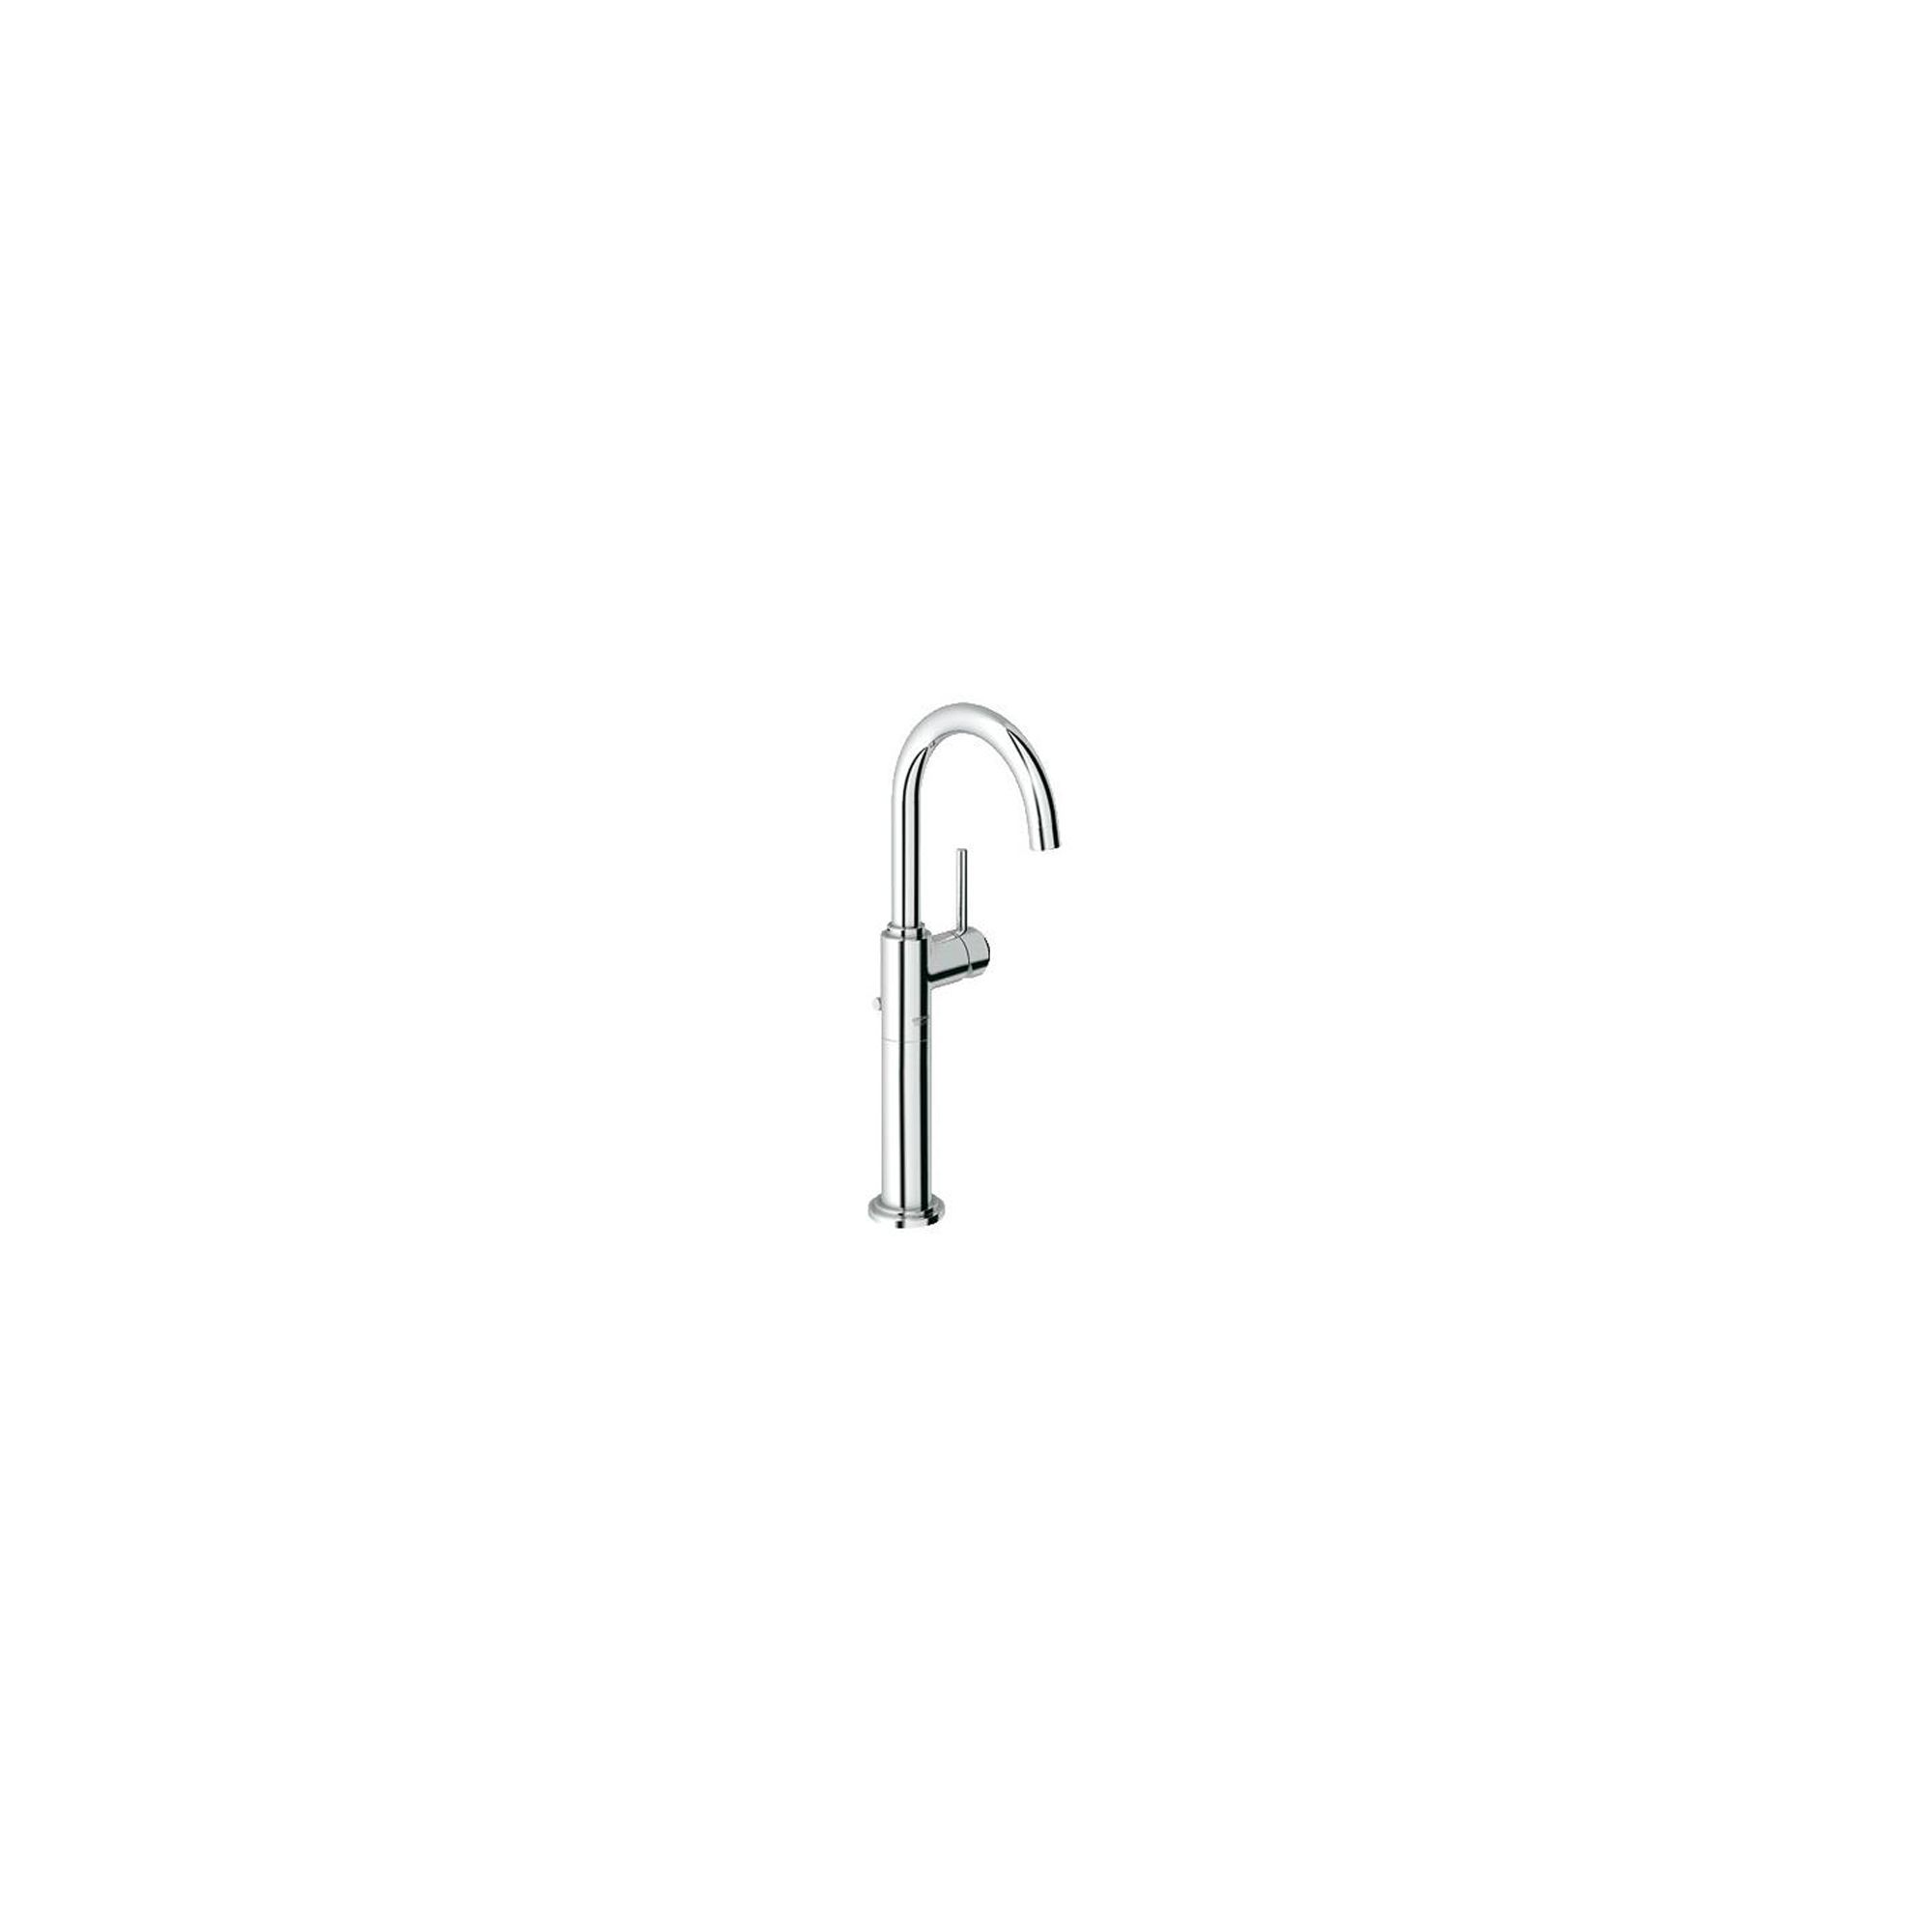 Grohe Atrio One Tall Mono Basin Mixer Tap, Single Handle, Chrome at Tesco Direct